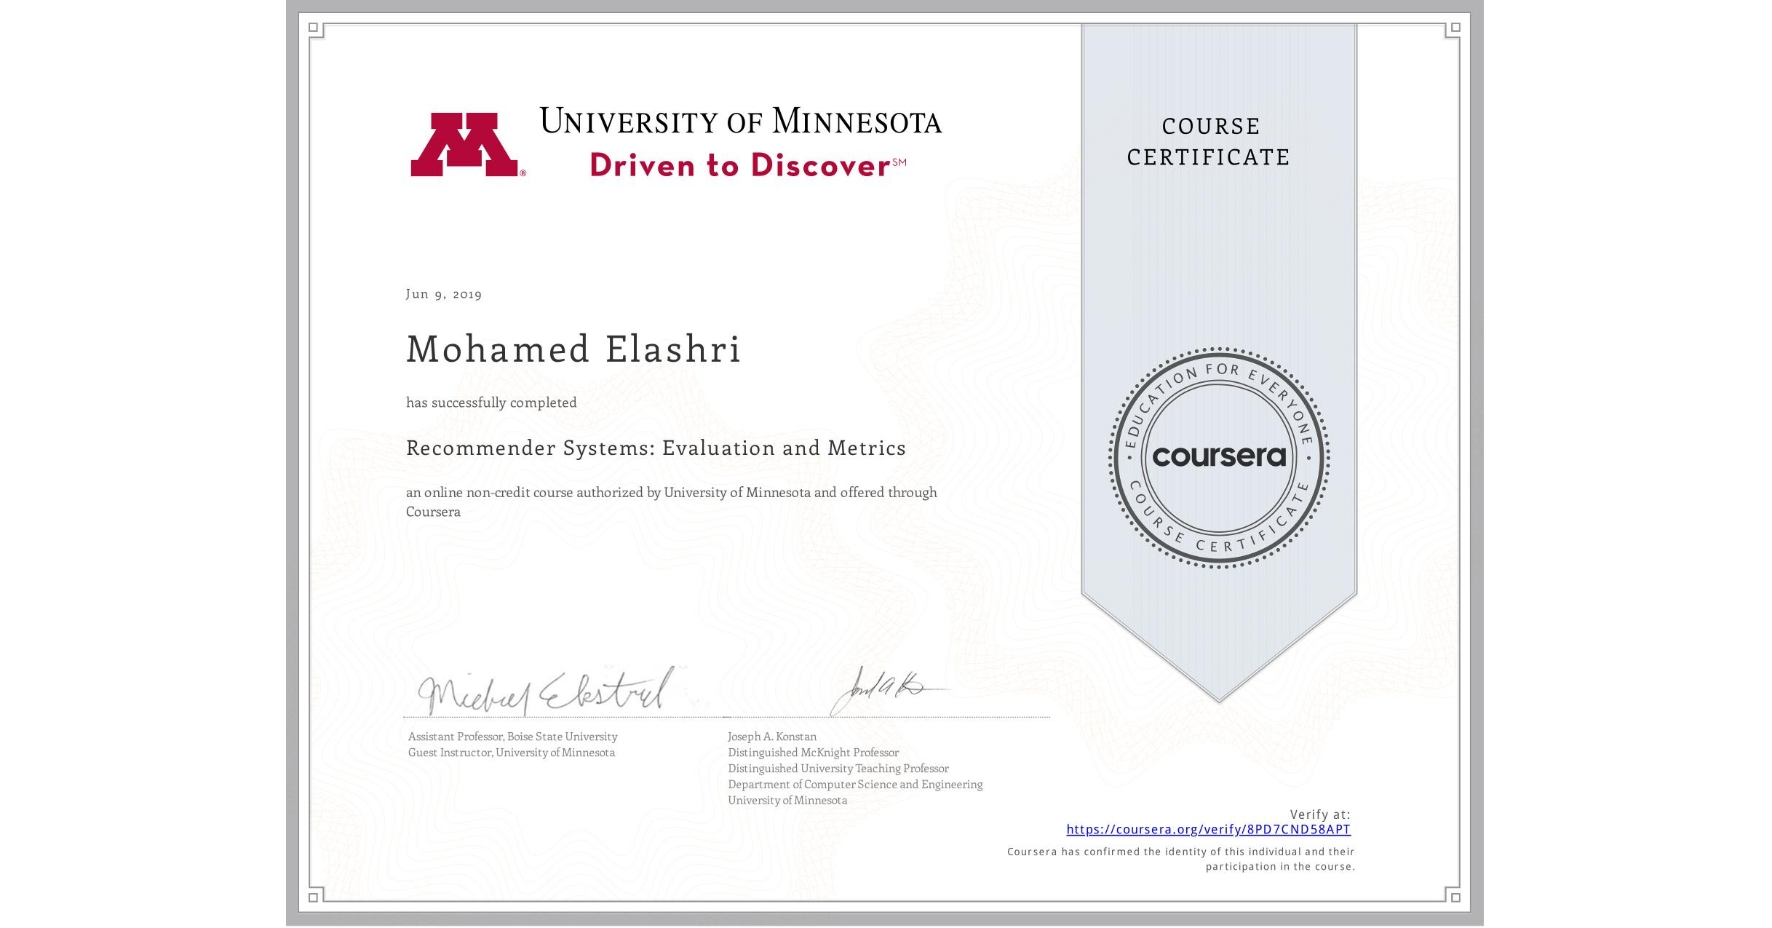 View certificate for Mohamed Elashri, Recommender Systems:  Evaluation and Metrics, an online non-credit course authorized by University of Minnesota and offered through Coursera